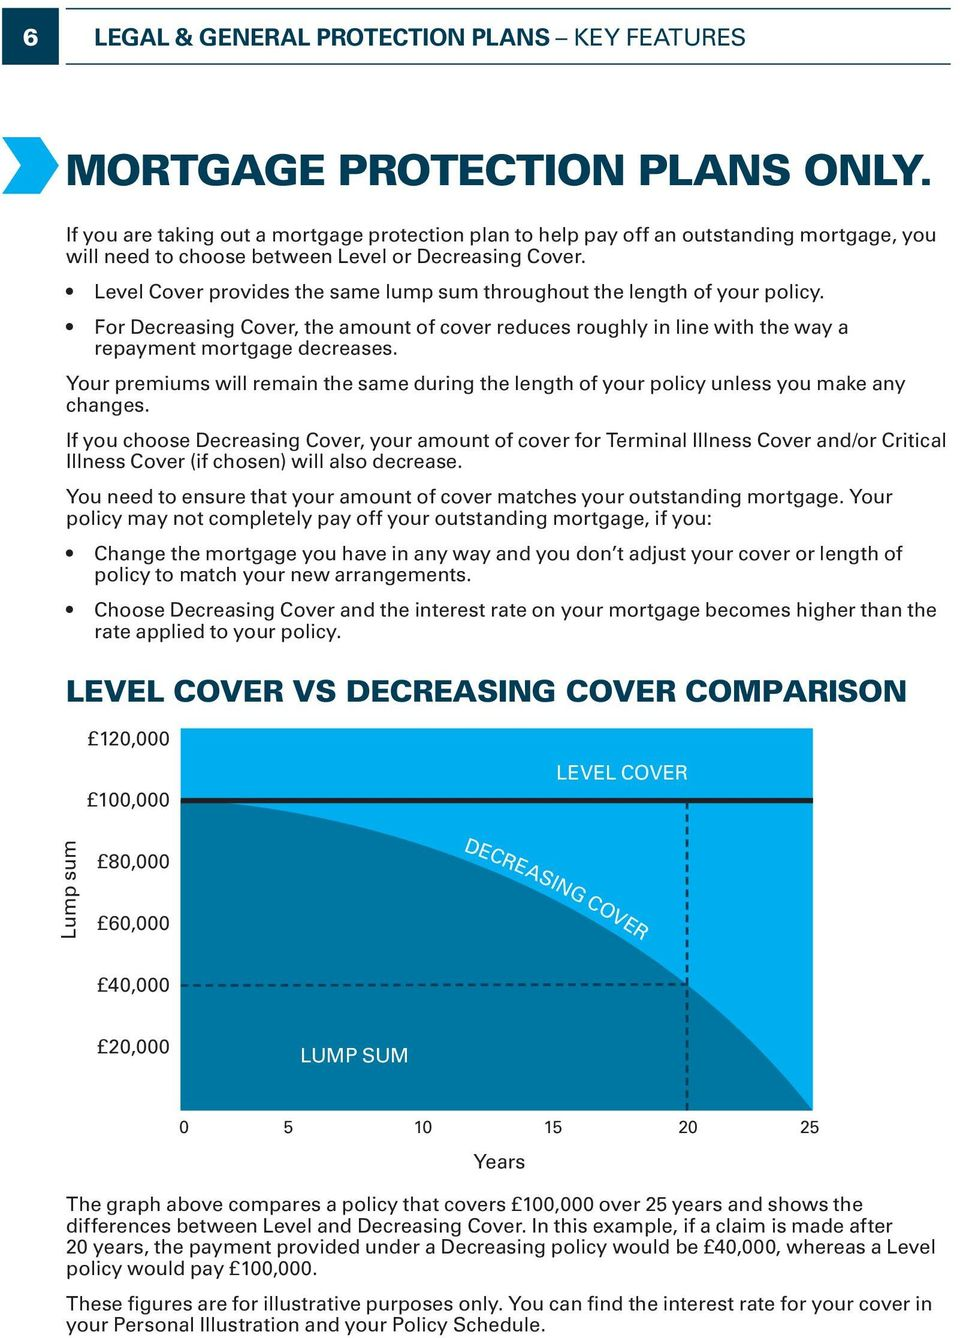 Level Cover provides the same lump sum throughout the length of your policy. For Decreasing Cover, the amount of cover reduces roughly in line with the way a repayment mortgage decreases.